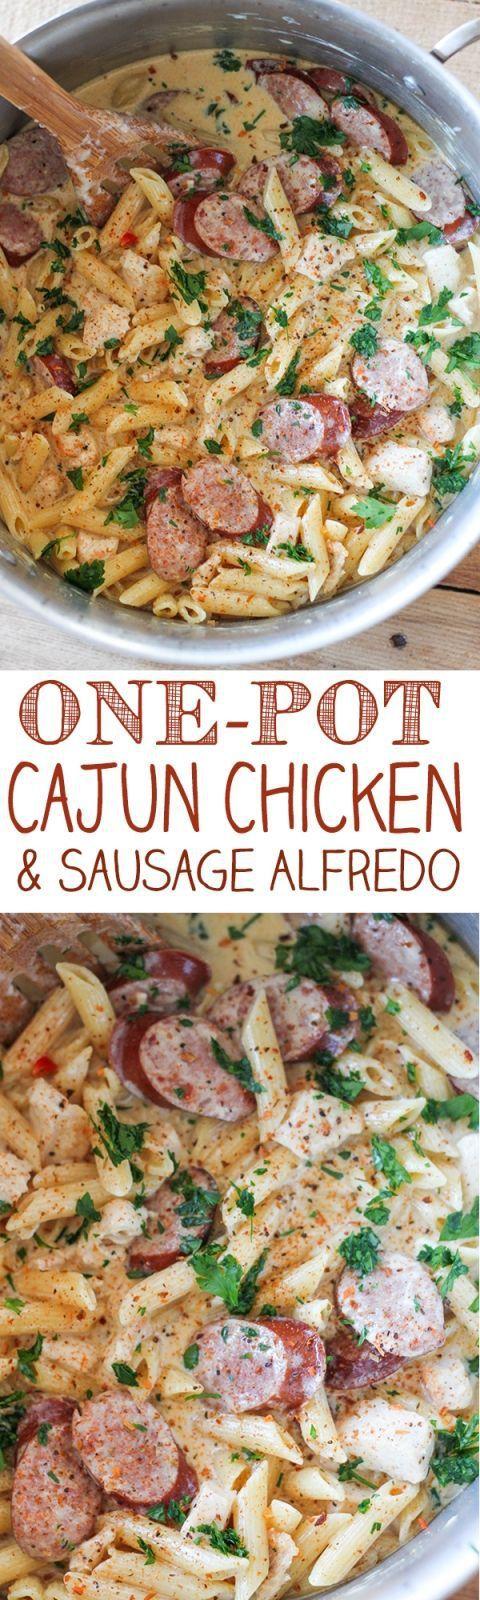 One-Pot Cajun Chicken and Sausage Alfredo Pasta Recipe | No. 2 Pencil - The Best Easy One Pot Pasta Family Dinner Recipes #onepotpasta #onepotmeals #pastarecipes #onepotpastarecipes #onepotrecipes #mealprep #pasta #easyrecipes #easydinners #easylunches #simplefamilymeals #simplefamilyrecipes #simplerecipes